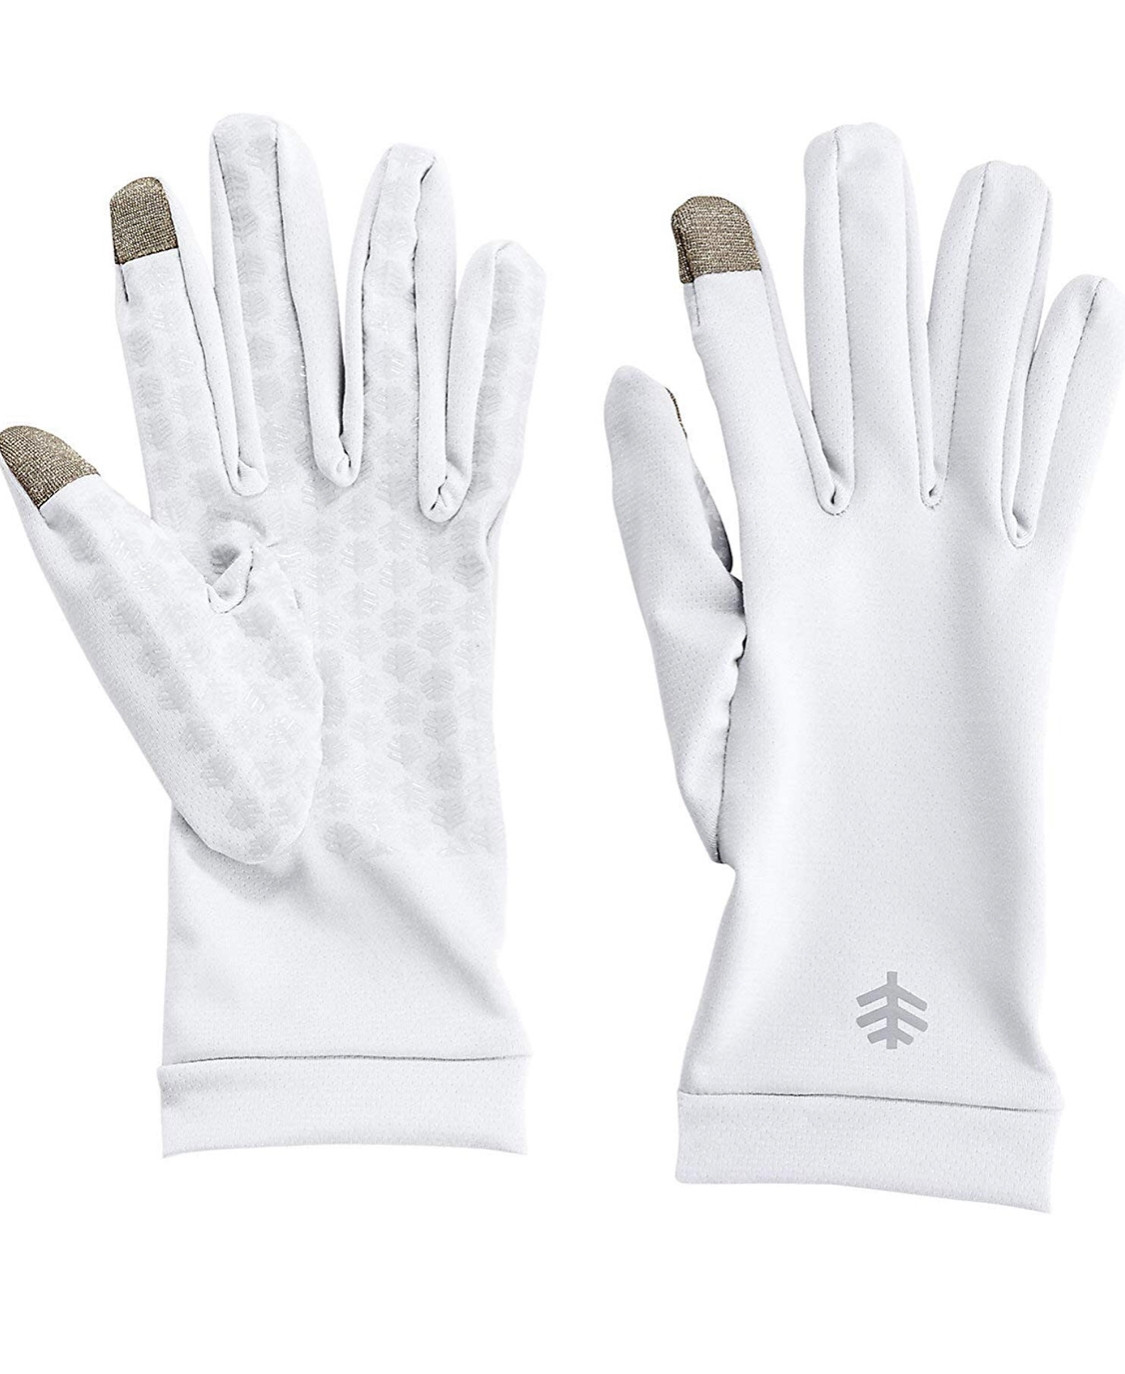 COOLIBAR UPF 50+ SUN WHITE GLOVES - LARGE